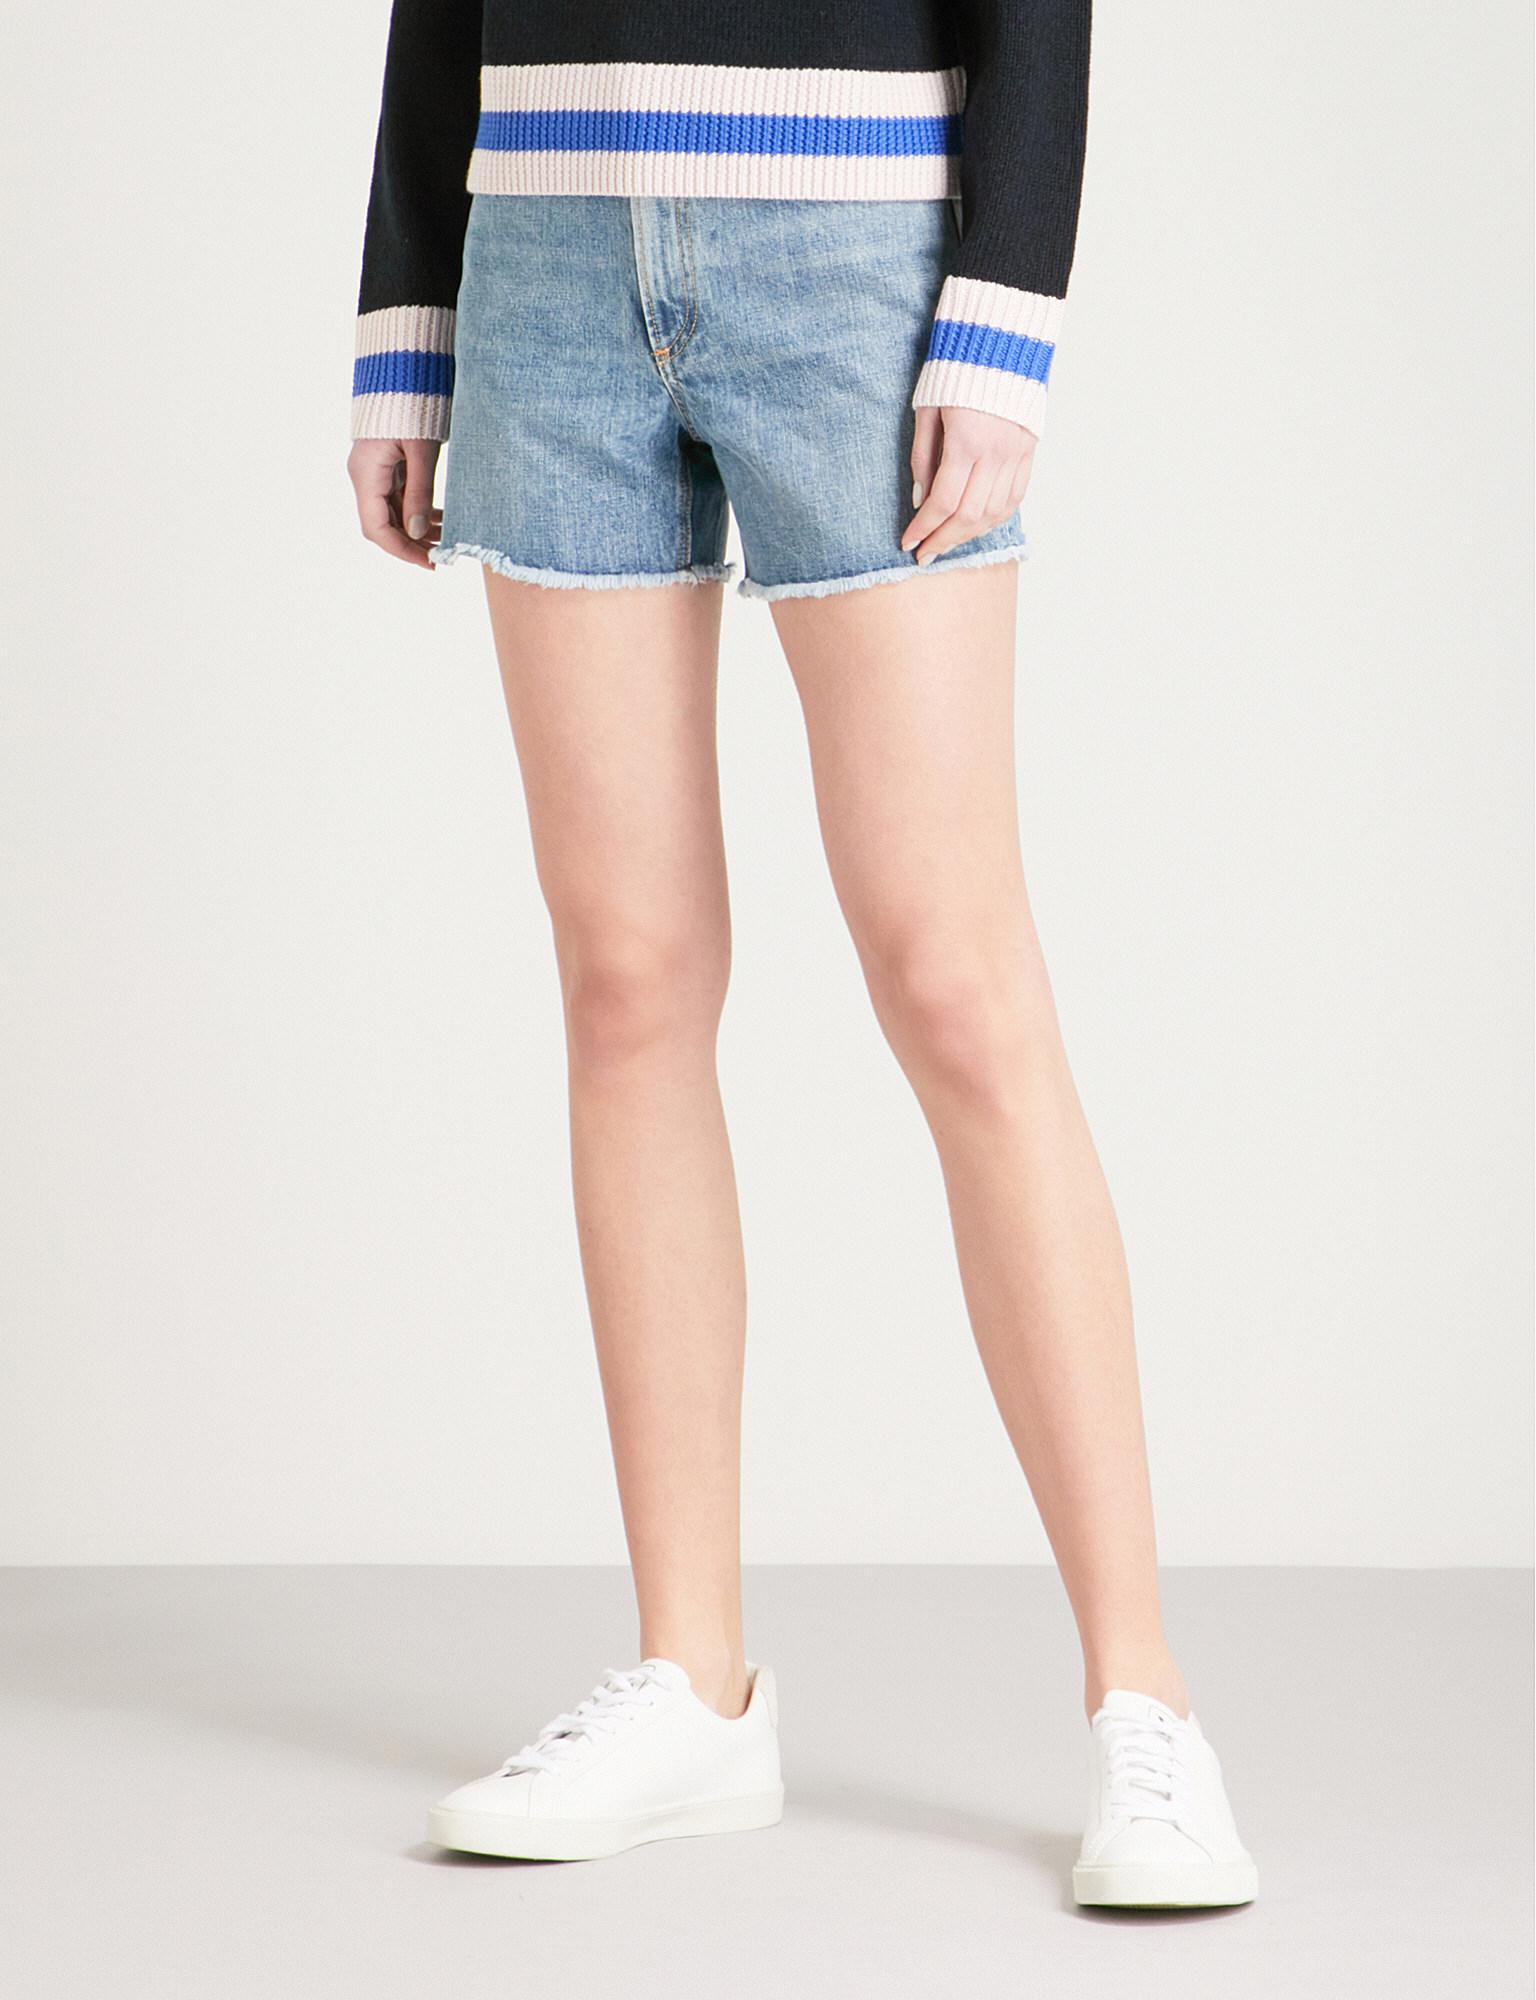 90b6559710 Rag & Bone Torti High-rise Denim Shorts in Blue - Lyst